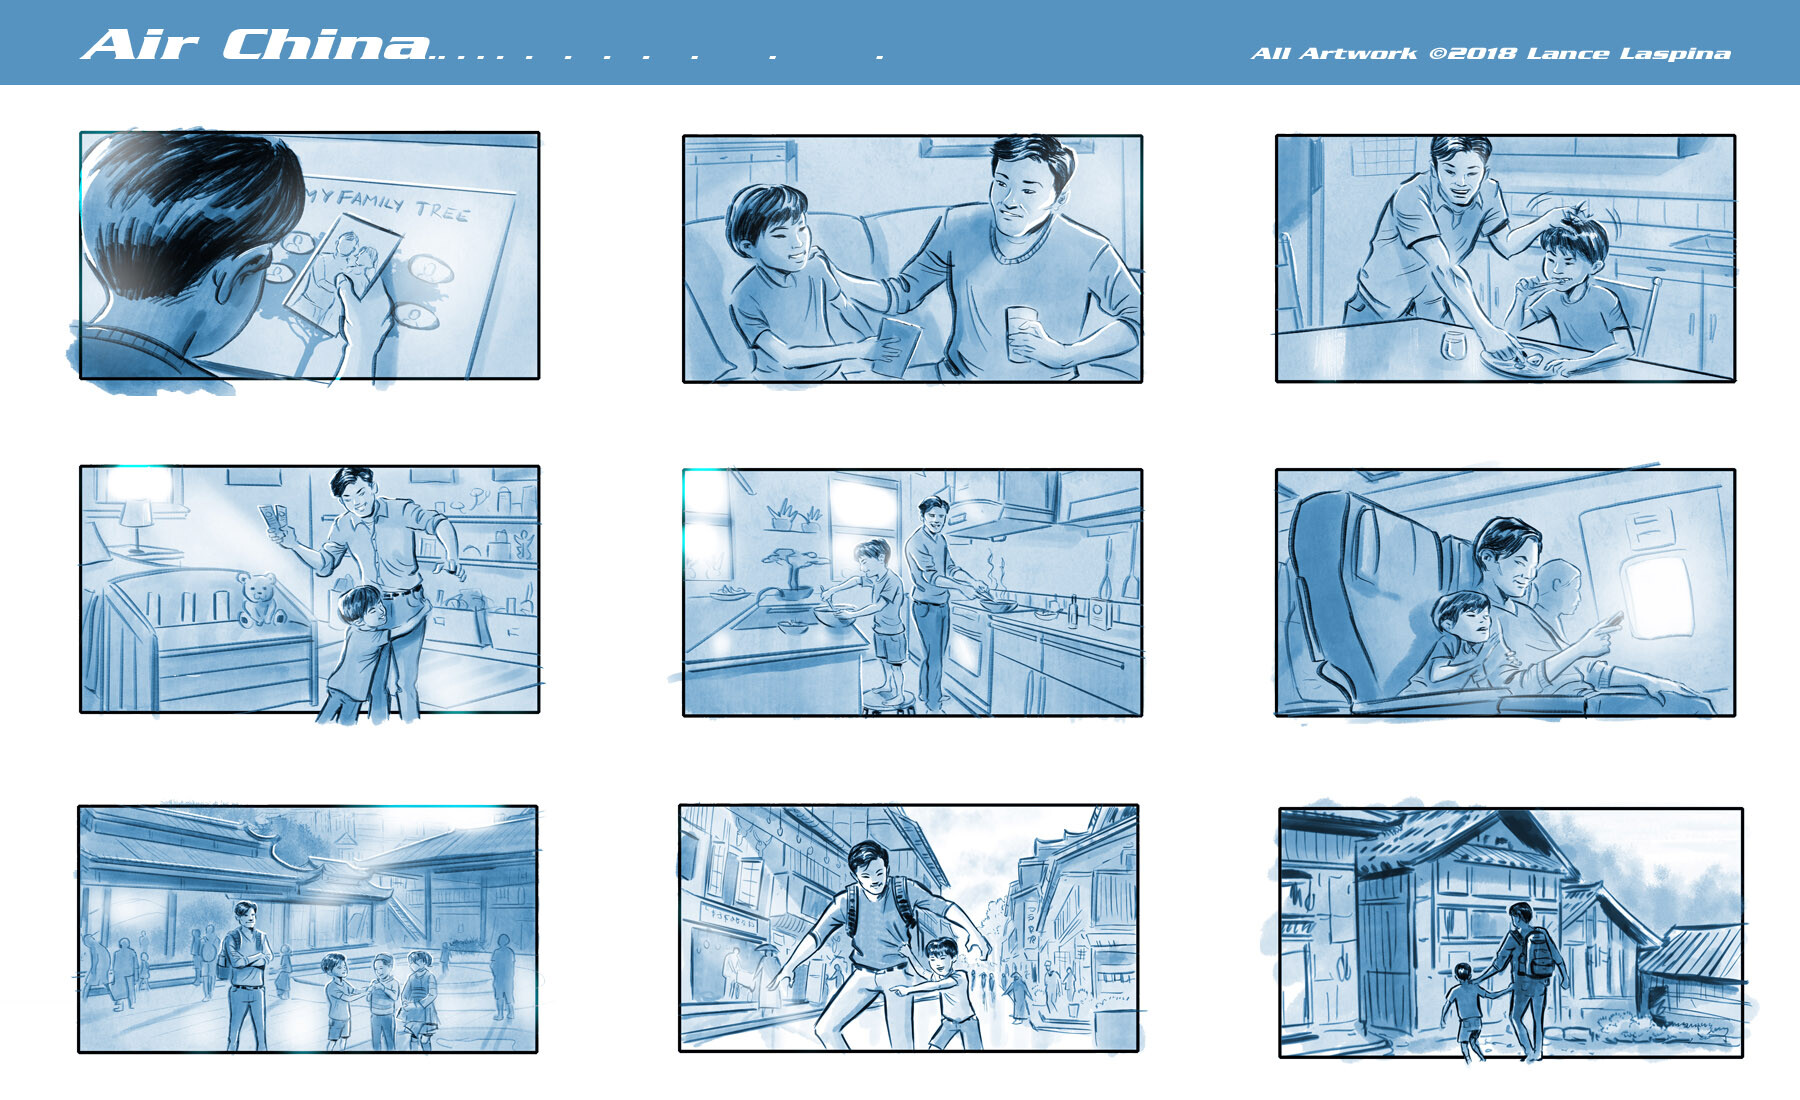 Lance laspina as storyboardsamples 06